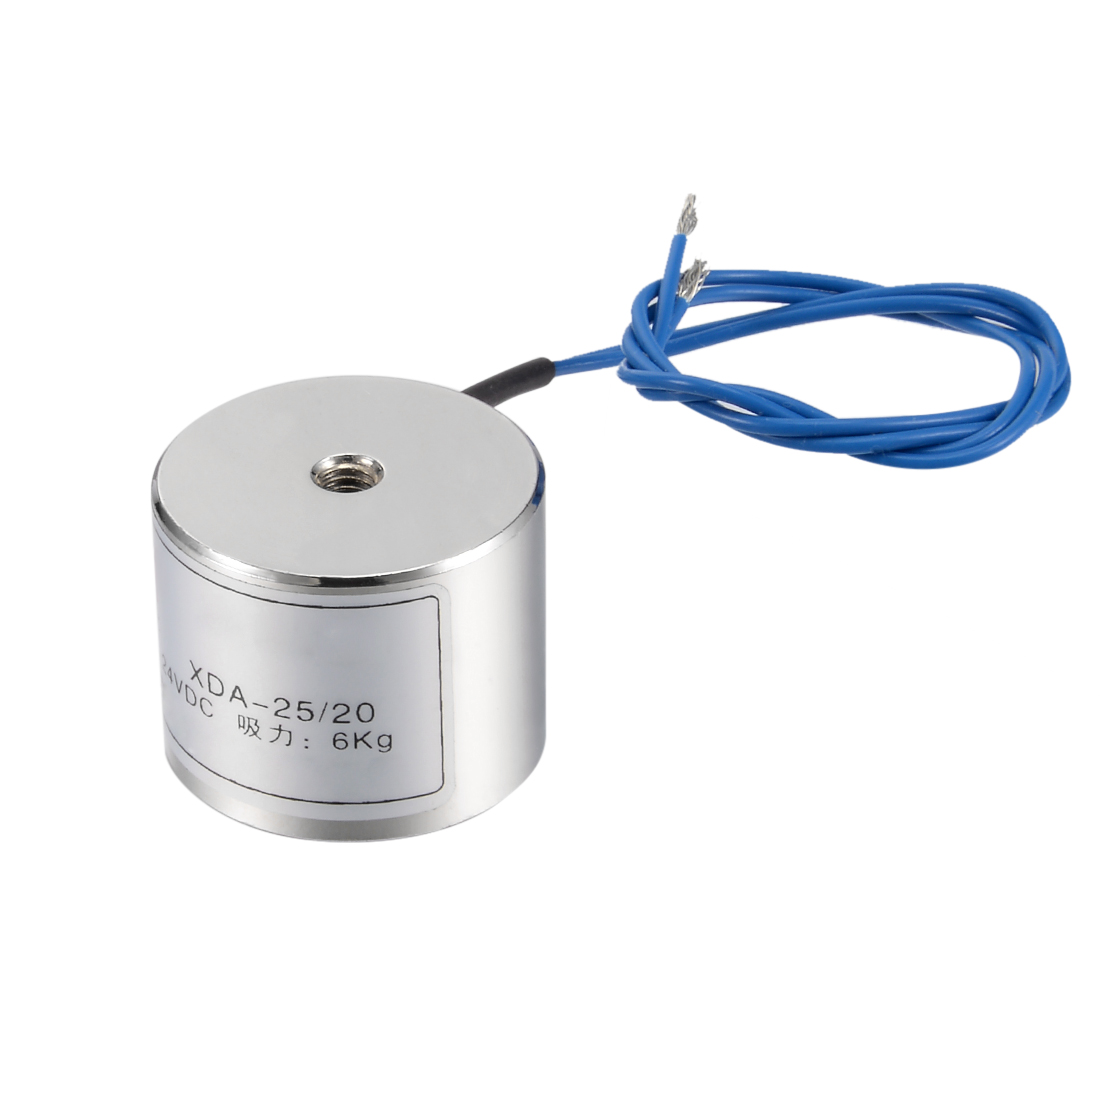 Uxcell 25mm X 20mm DC24V 0.1A 2.4W 60N Sucking Disc Solenoid Lift Holding Electromagnet